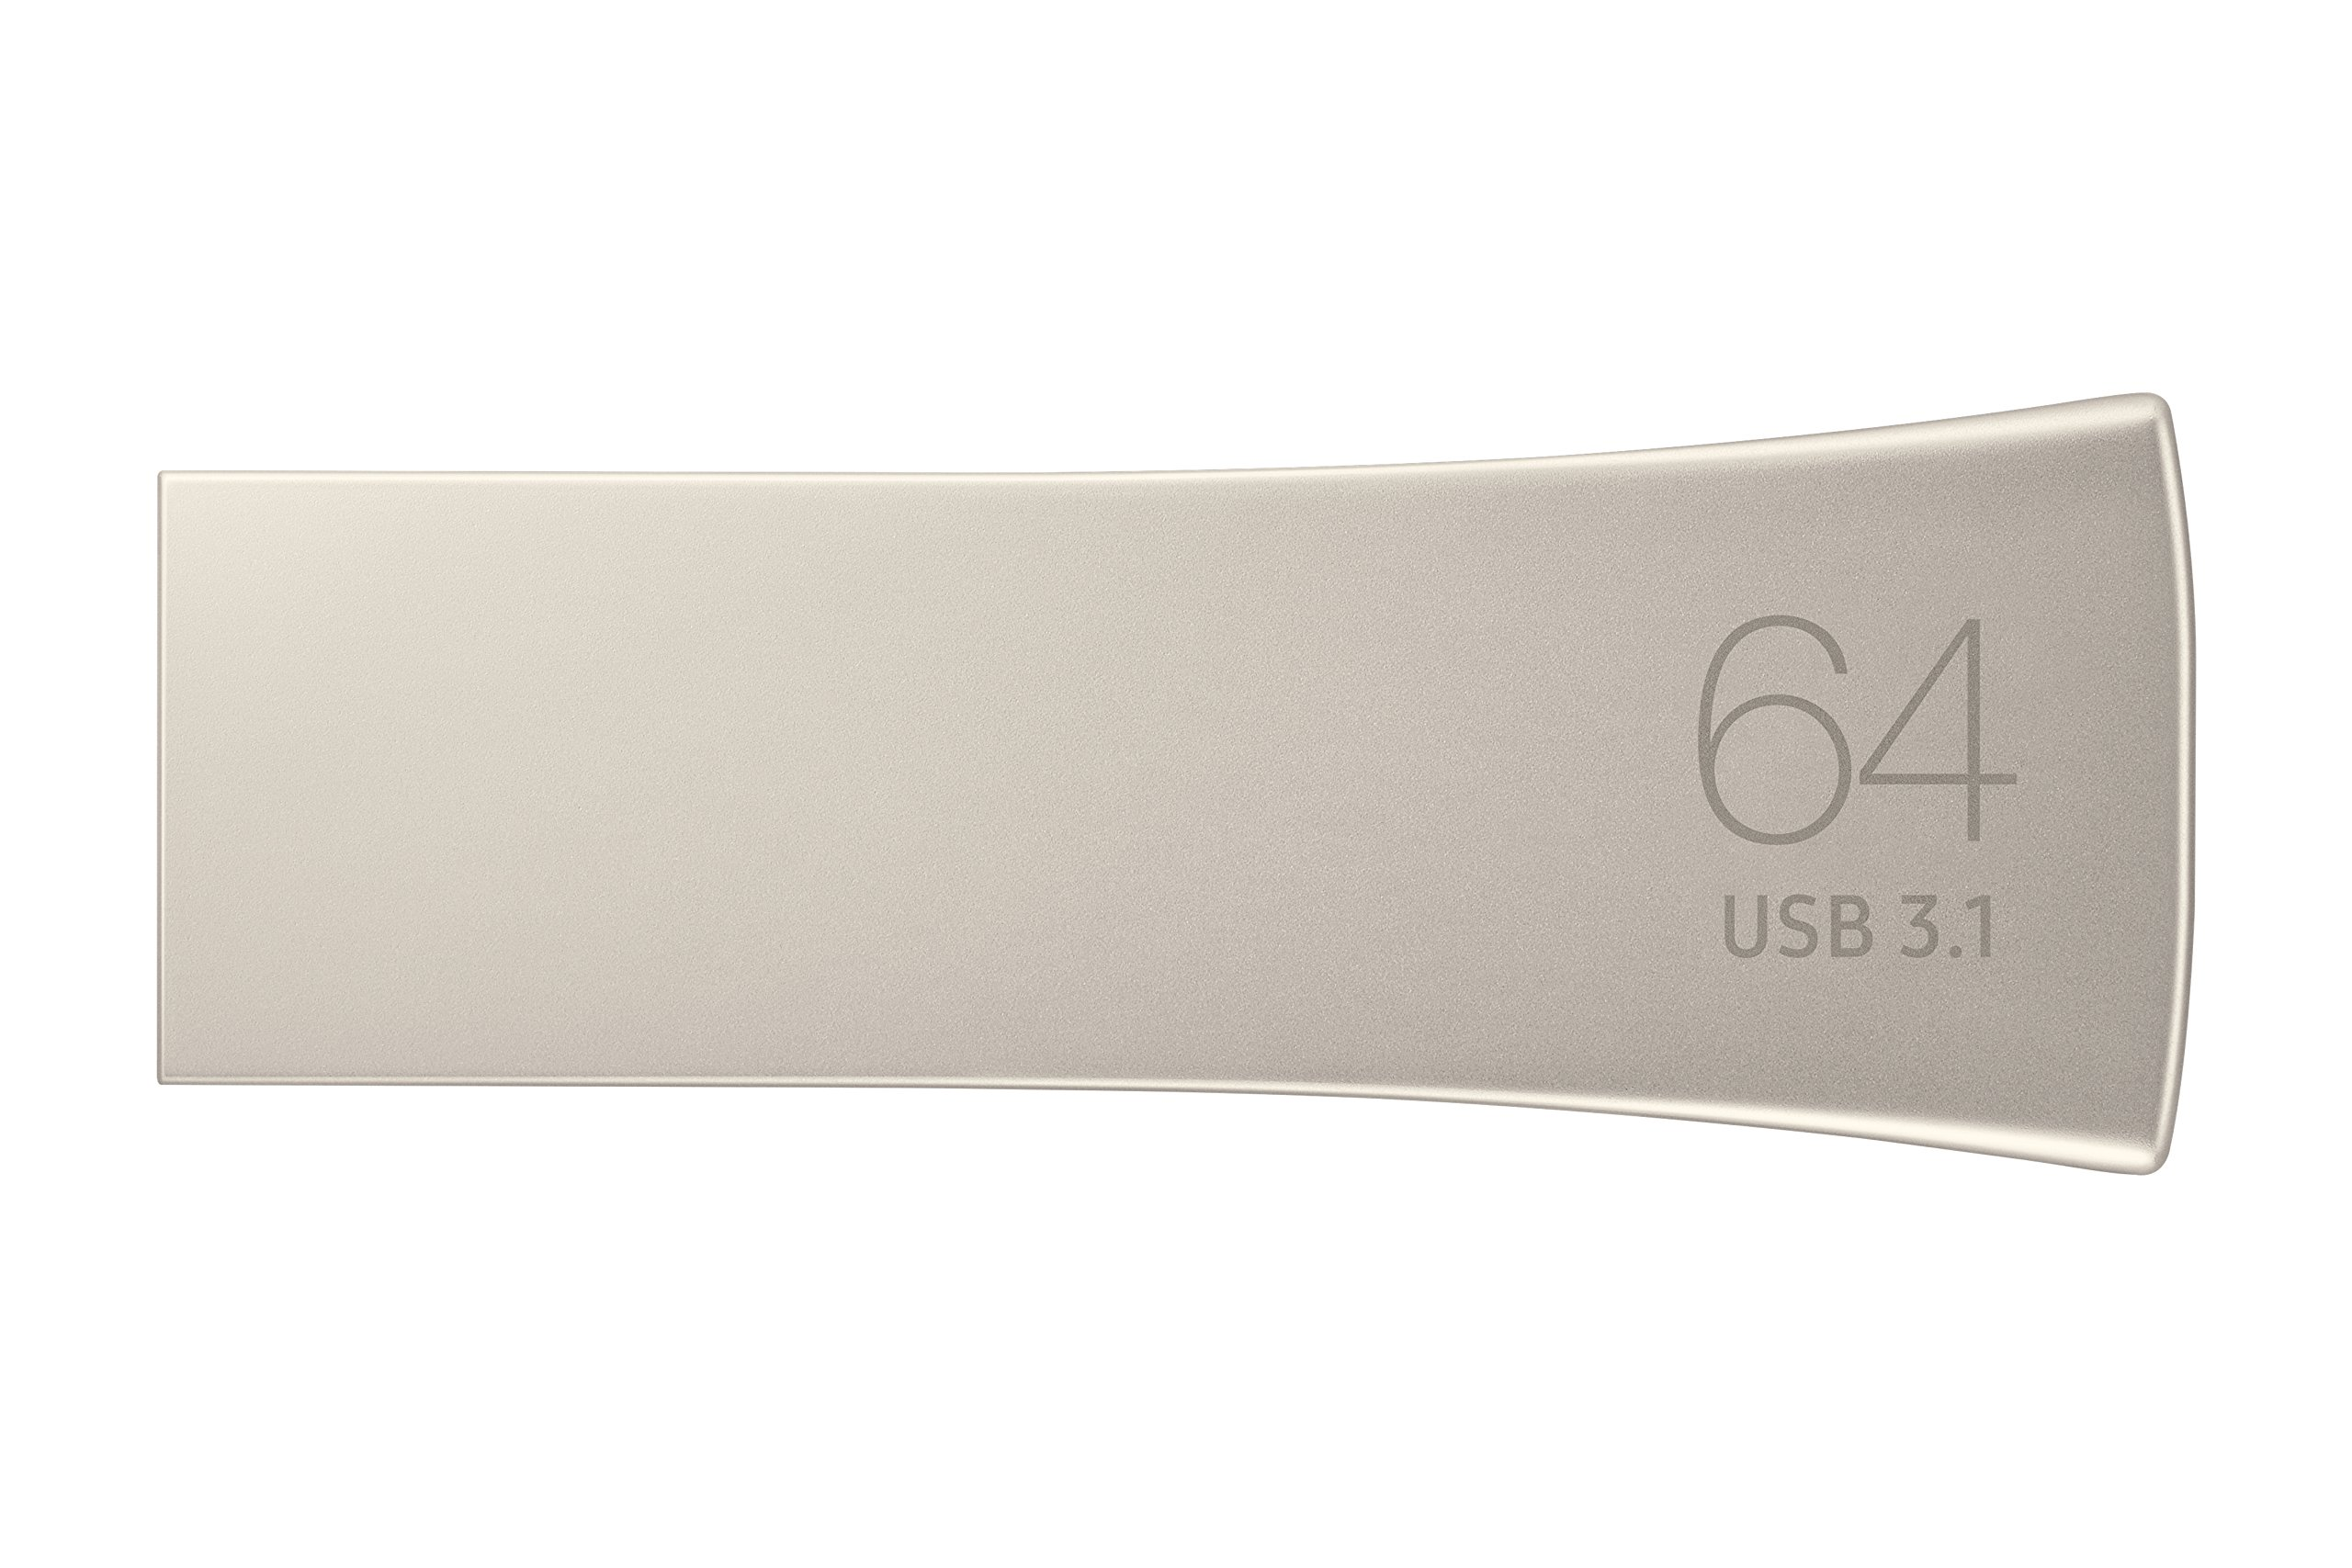 Samsung BAR Plus 64GB - 200MB/s USB 3.1 Flash Drive Champagne Silver (MUF-64BE3/AM) by Samsung (Image #4)